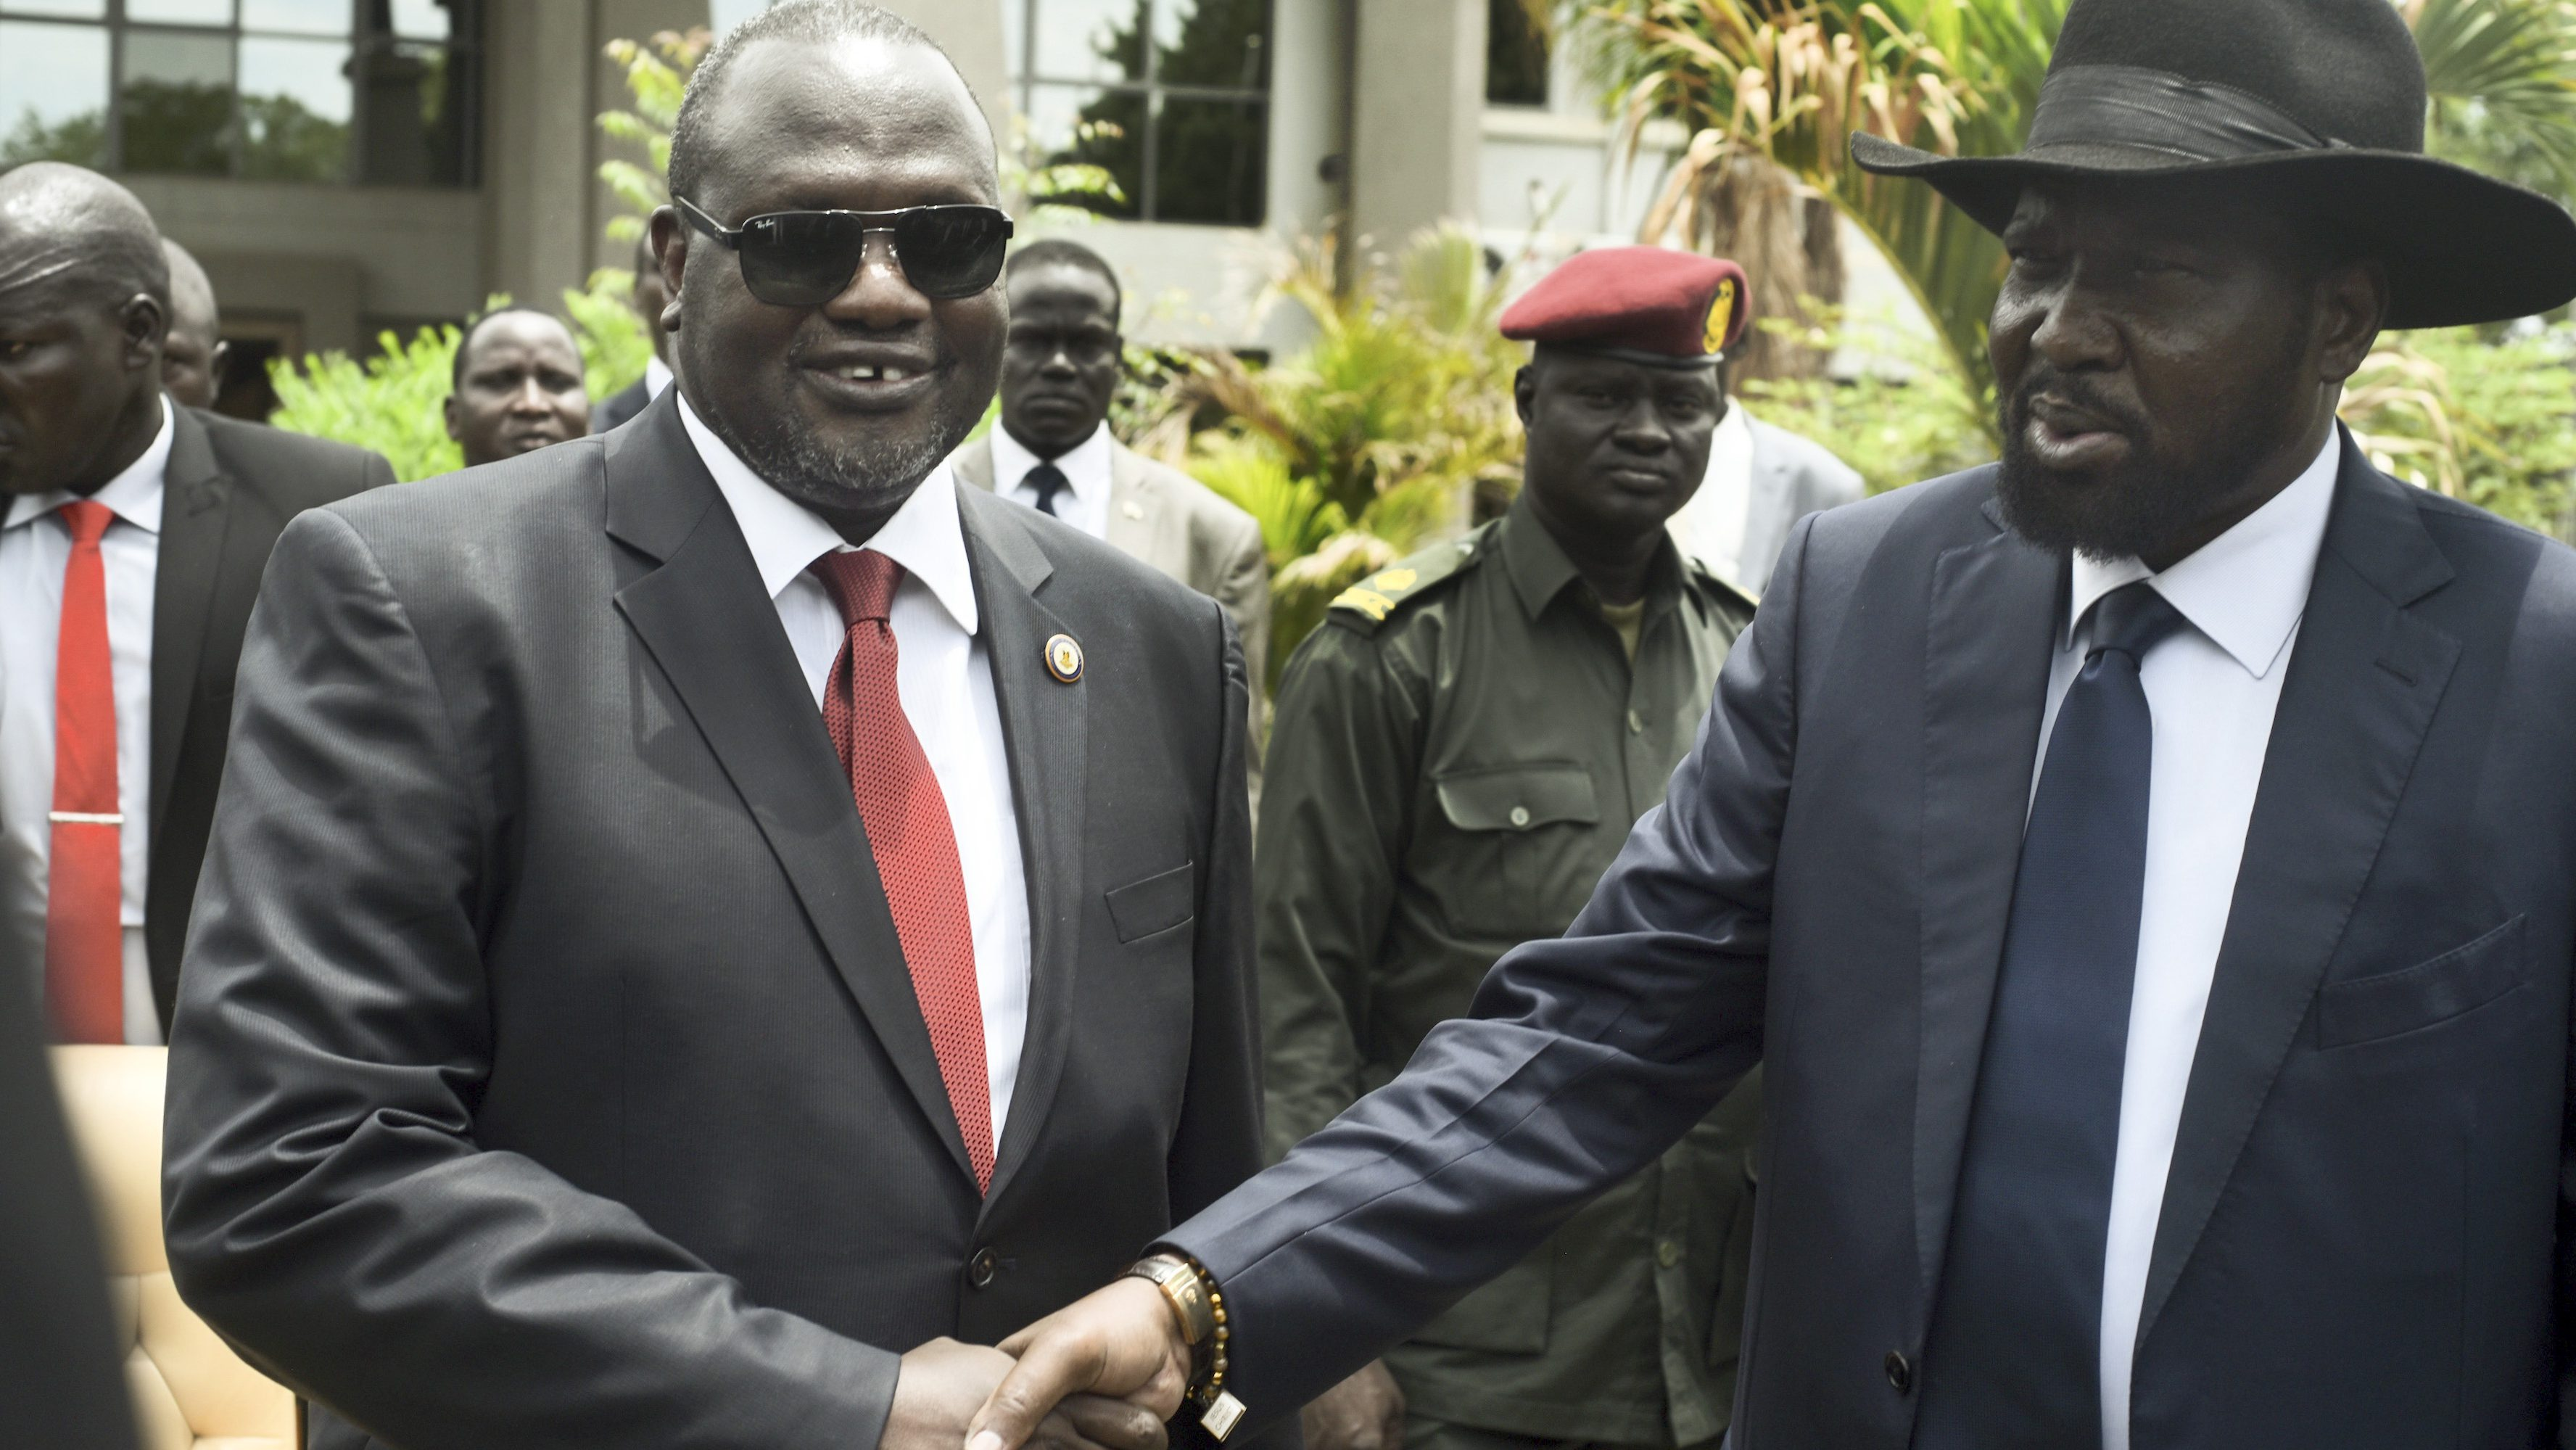 South Sudan's first vice president Riek Machar, left, and President Salva Kiir, right, shake hands following the first meeting of a new transitional coalition government, in the capital Juba, South Sudan, Apr. 29.